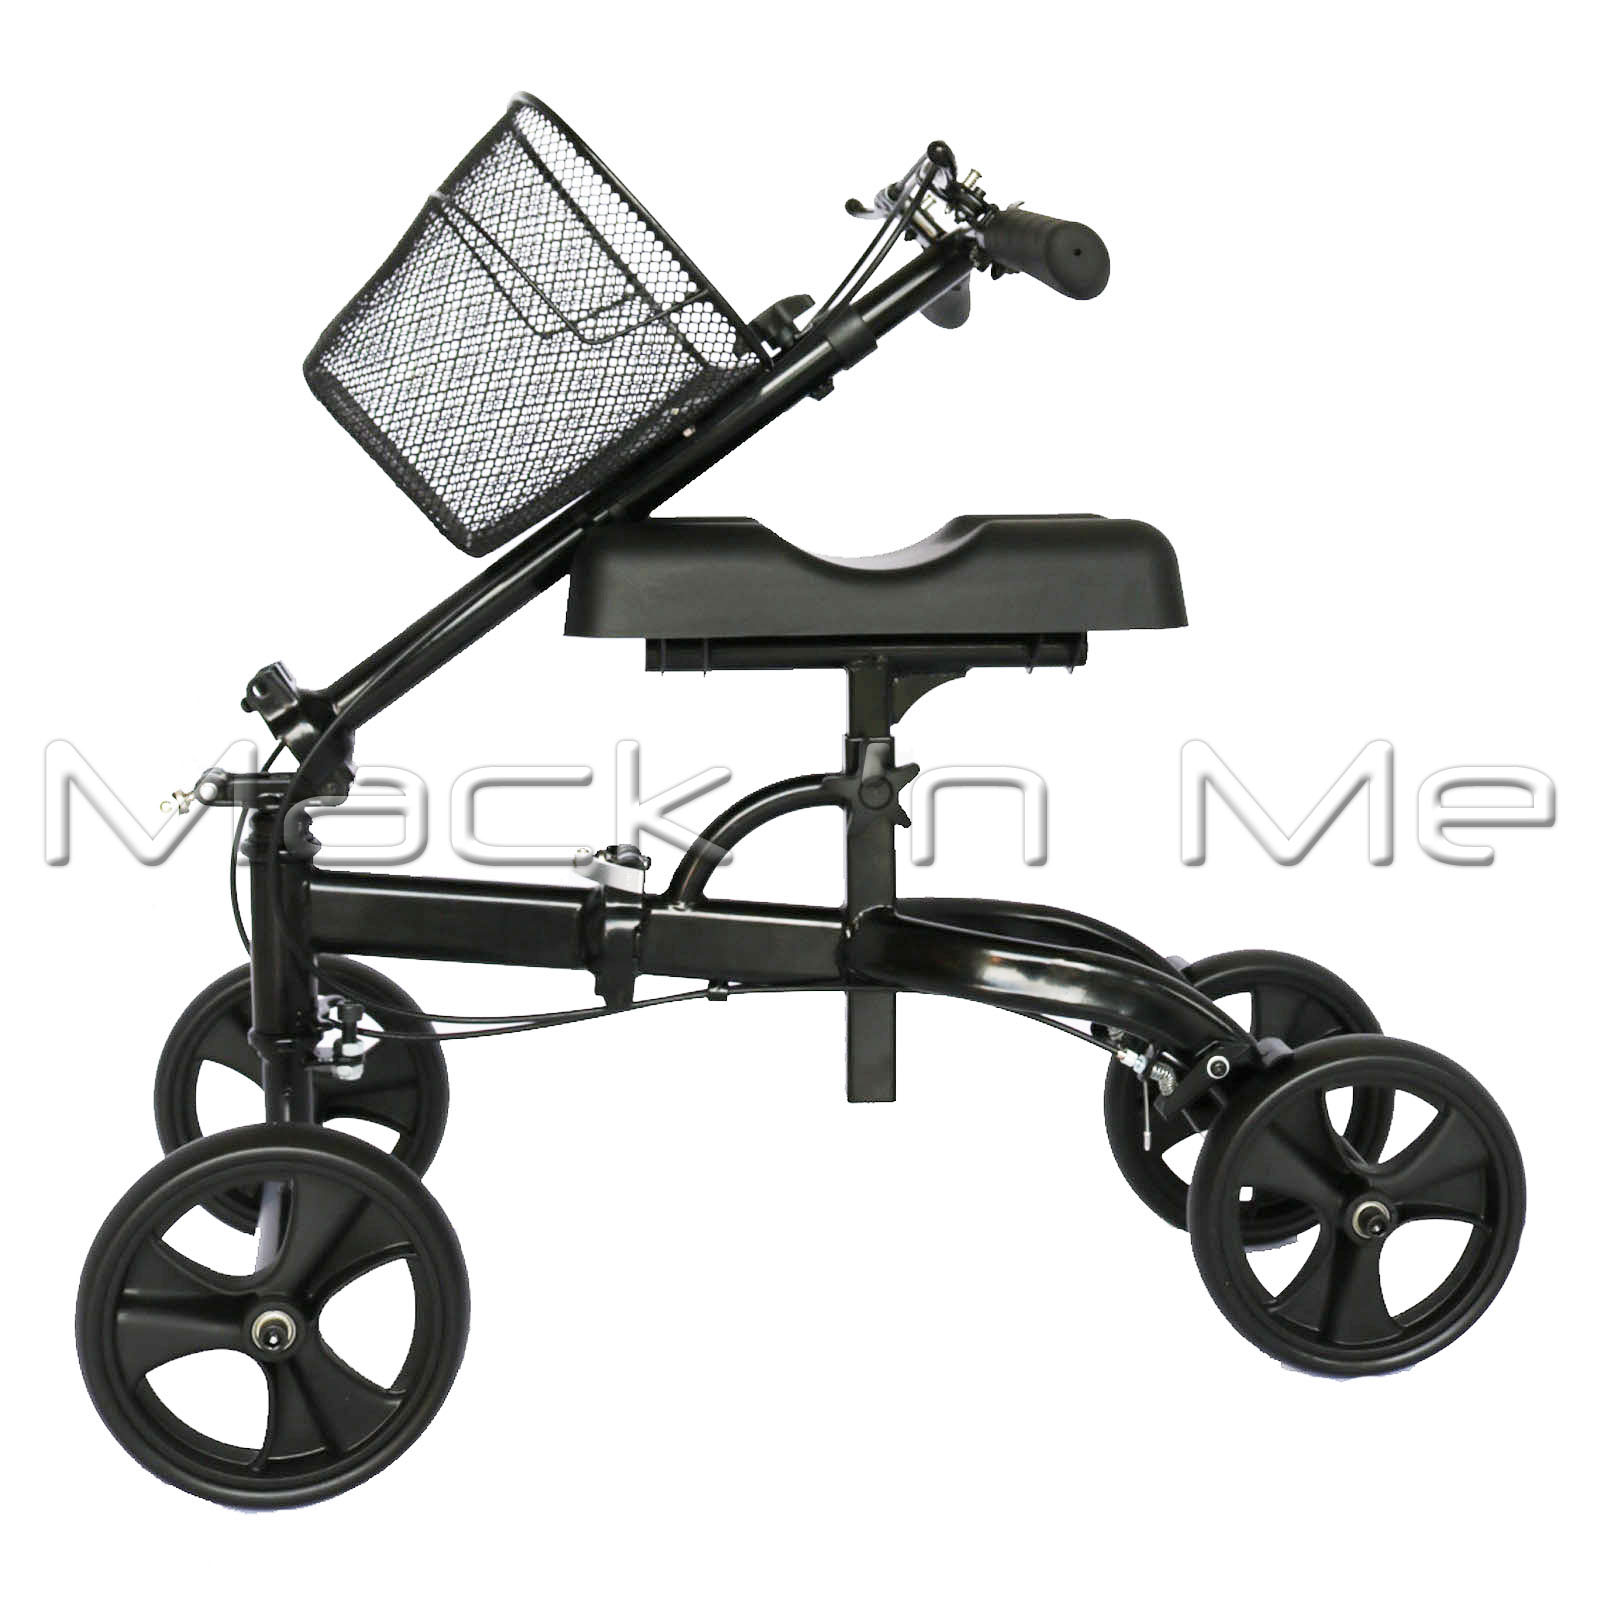 wheelchair knee plastic childrens table and chairs set walker scooter mobility alternative crutches